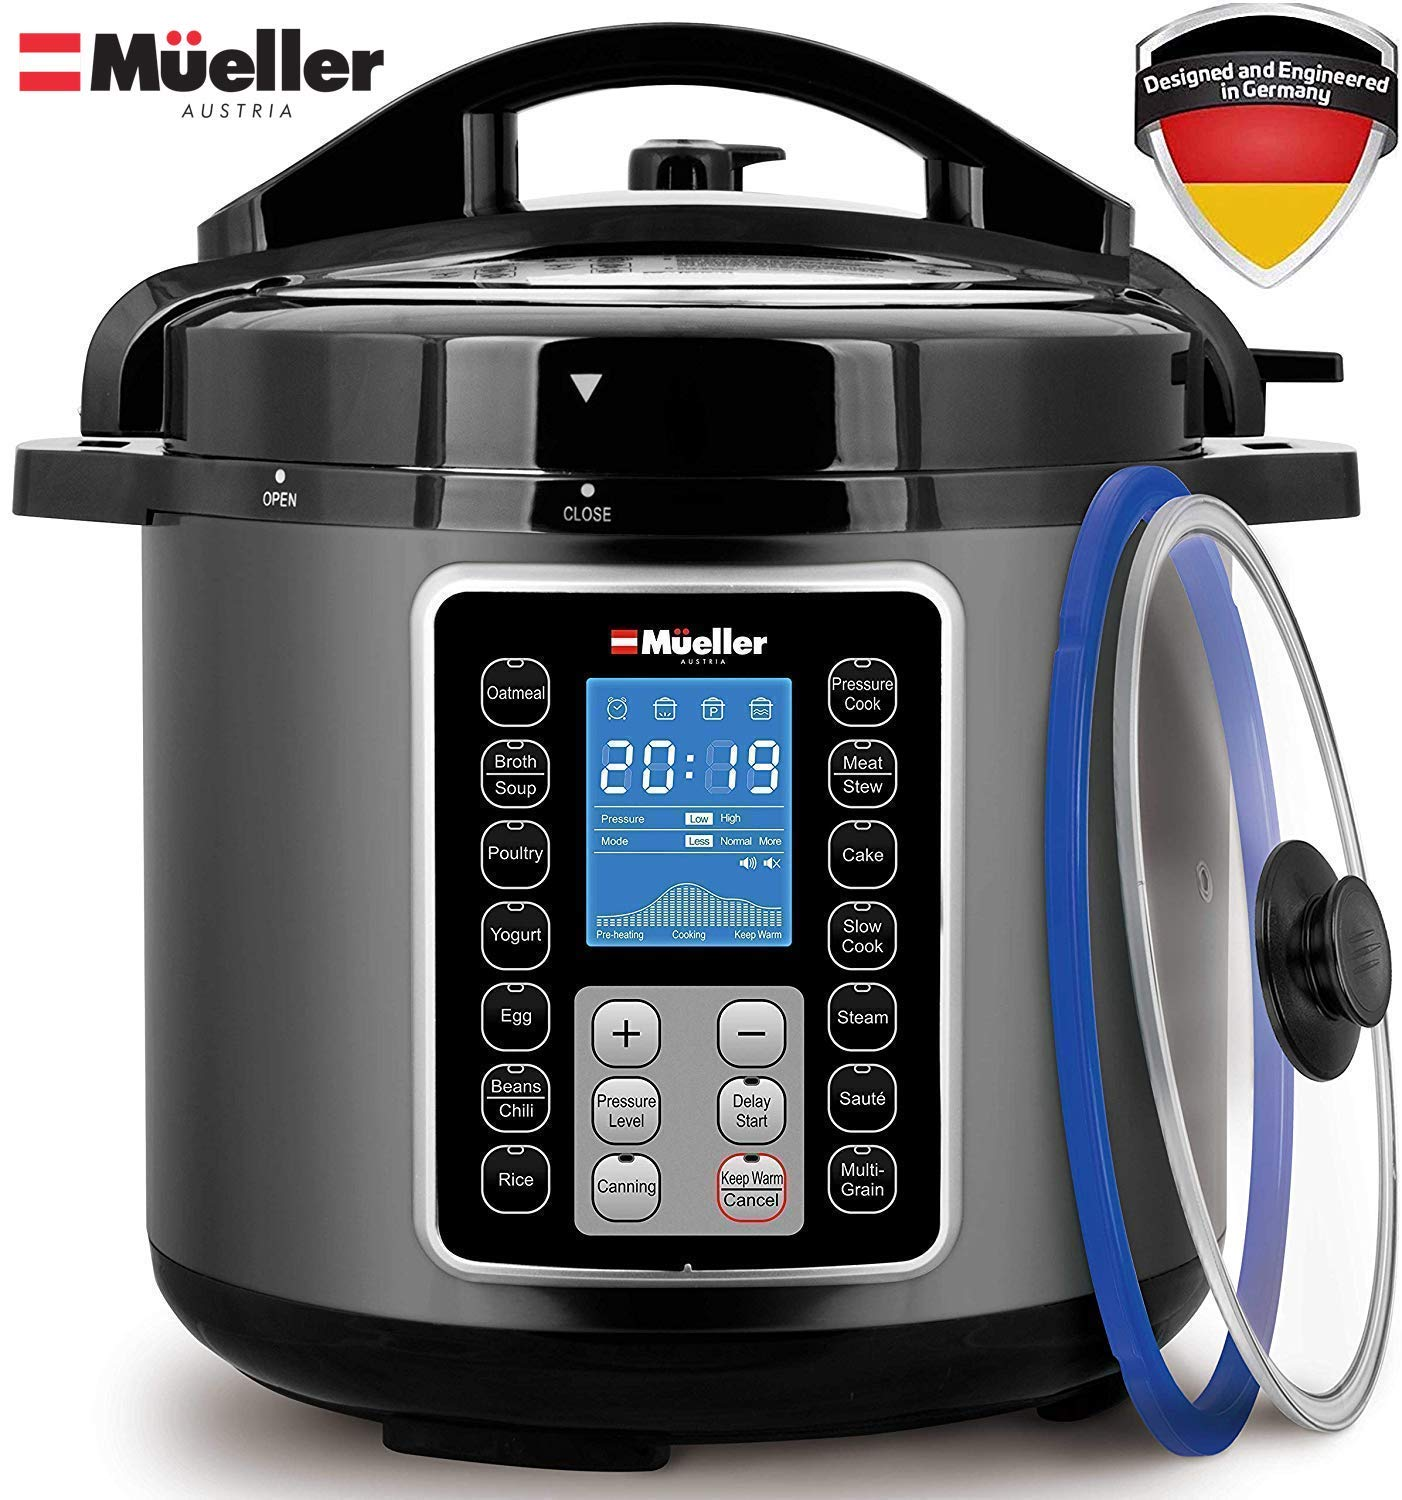 Mueller UltraPot 6Q Pressure Cooker Instant Crock 10 in 1 Hot Pot with German ThermaV Tech, Cook 2 Dishes at Once, BONUS Tempered Glass Lid incl, Saute, Steamer, Slow, Rice, Yogurt, Maker, Sterilizer by Mueller Austria